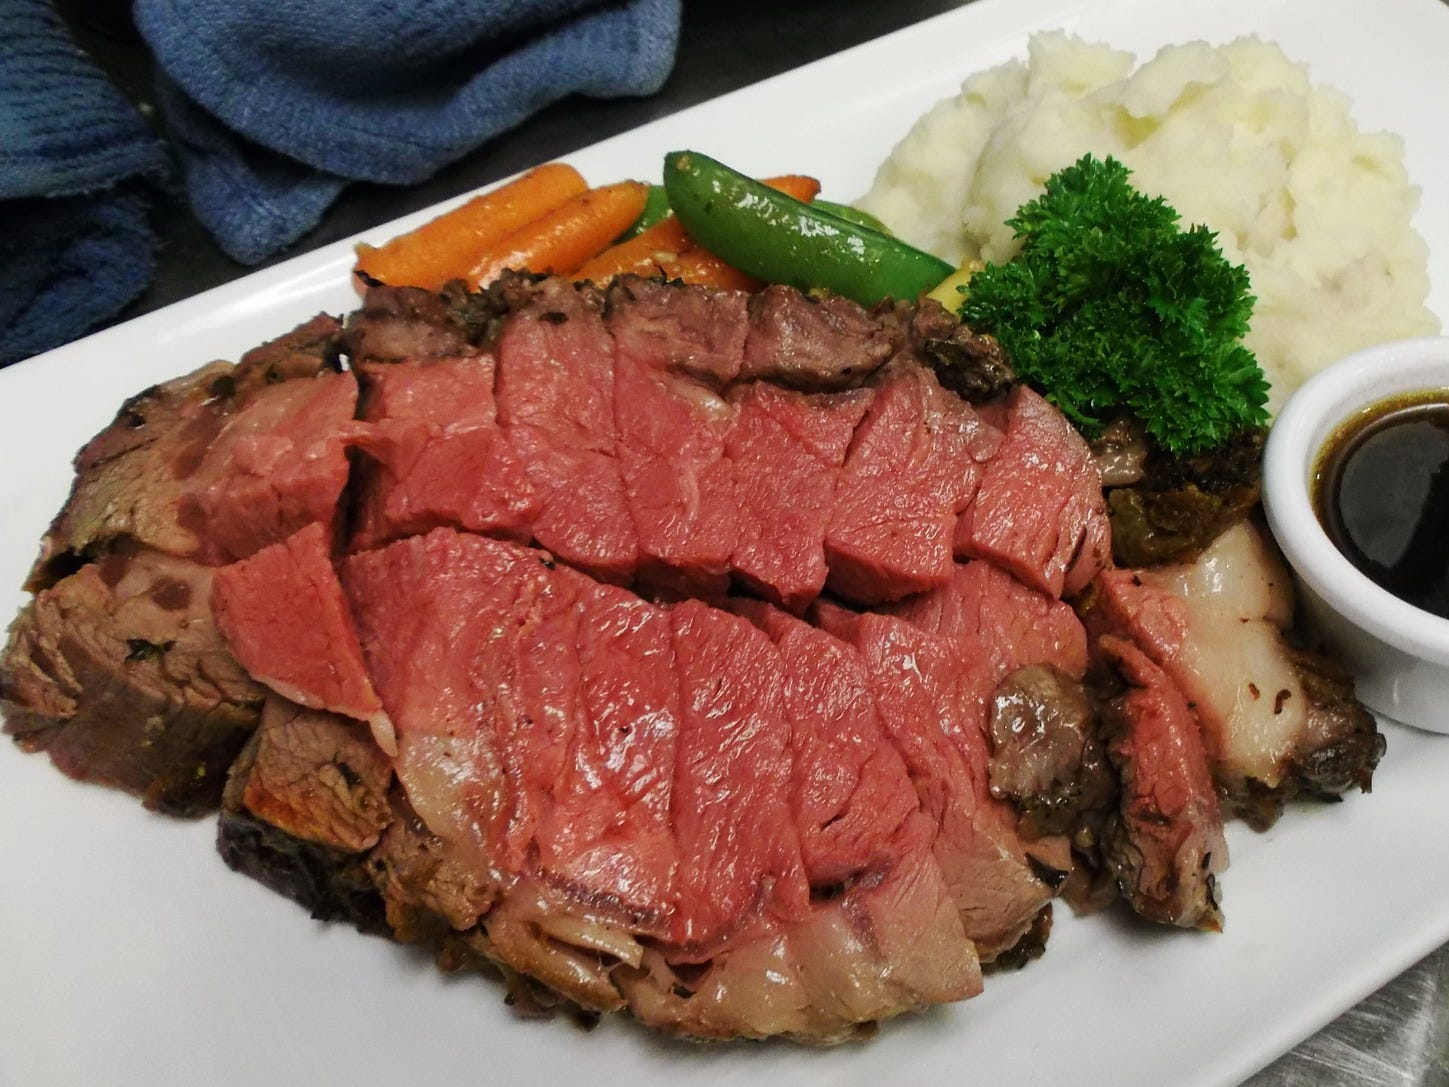 Most of the food has Hawaiian roots, but they specialize in other large grilled meat plates, such as this perfectly cooked prime rib.